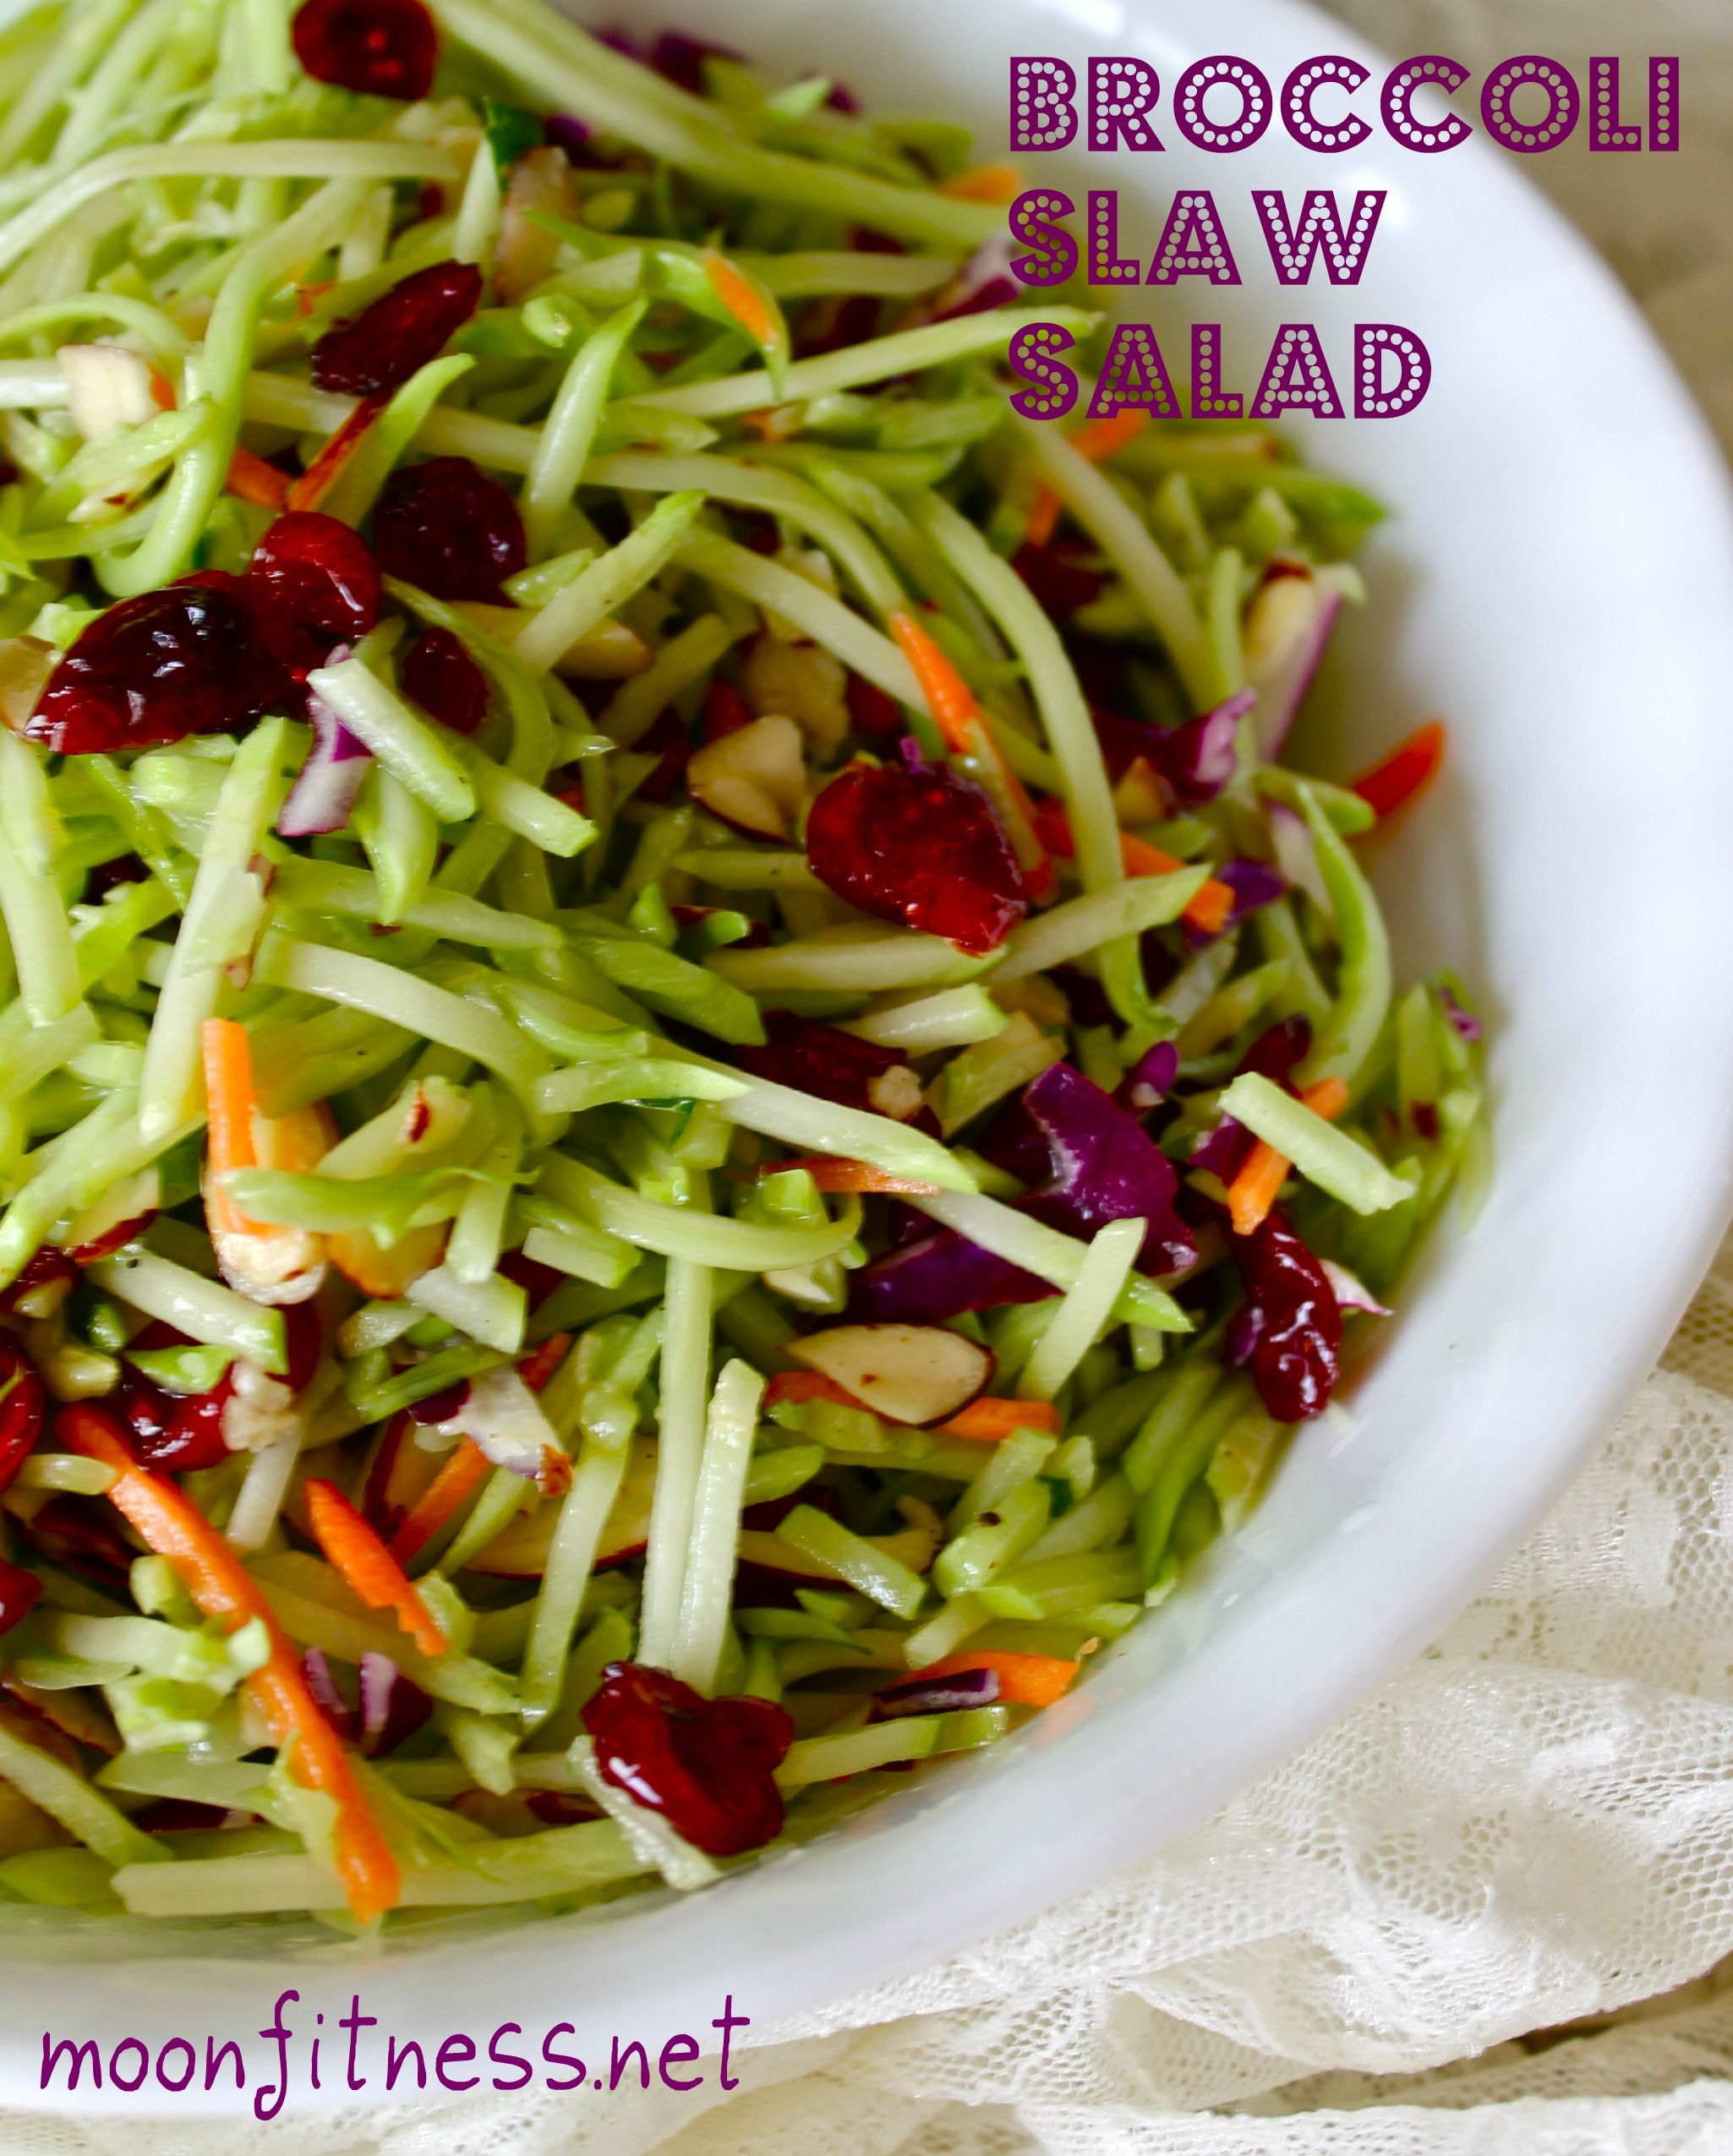 recipe: broccoli slaw salad paleo [7]